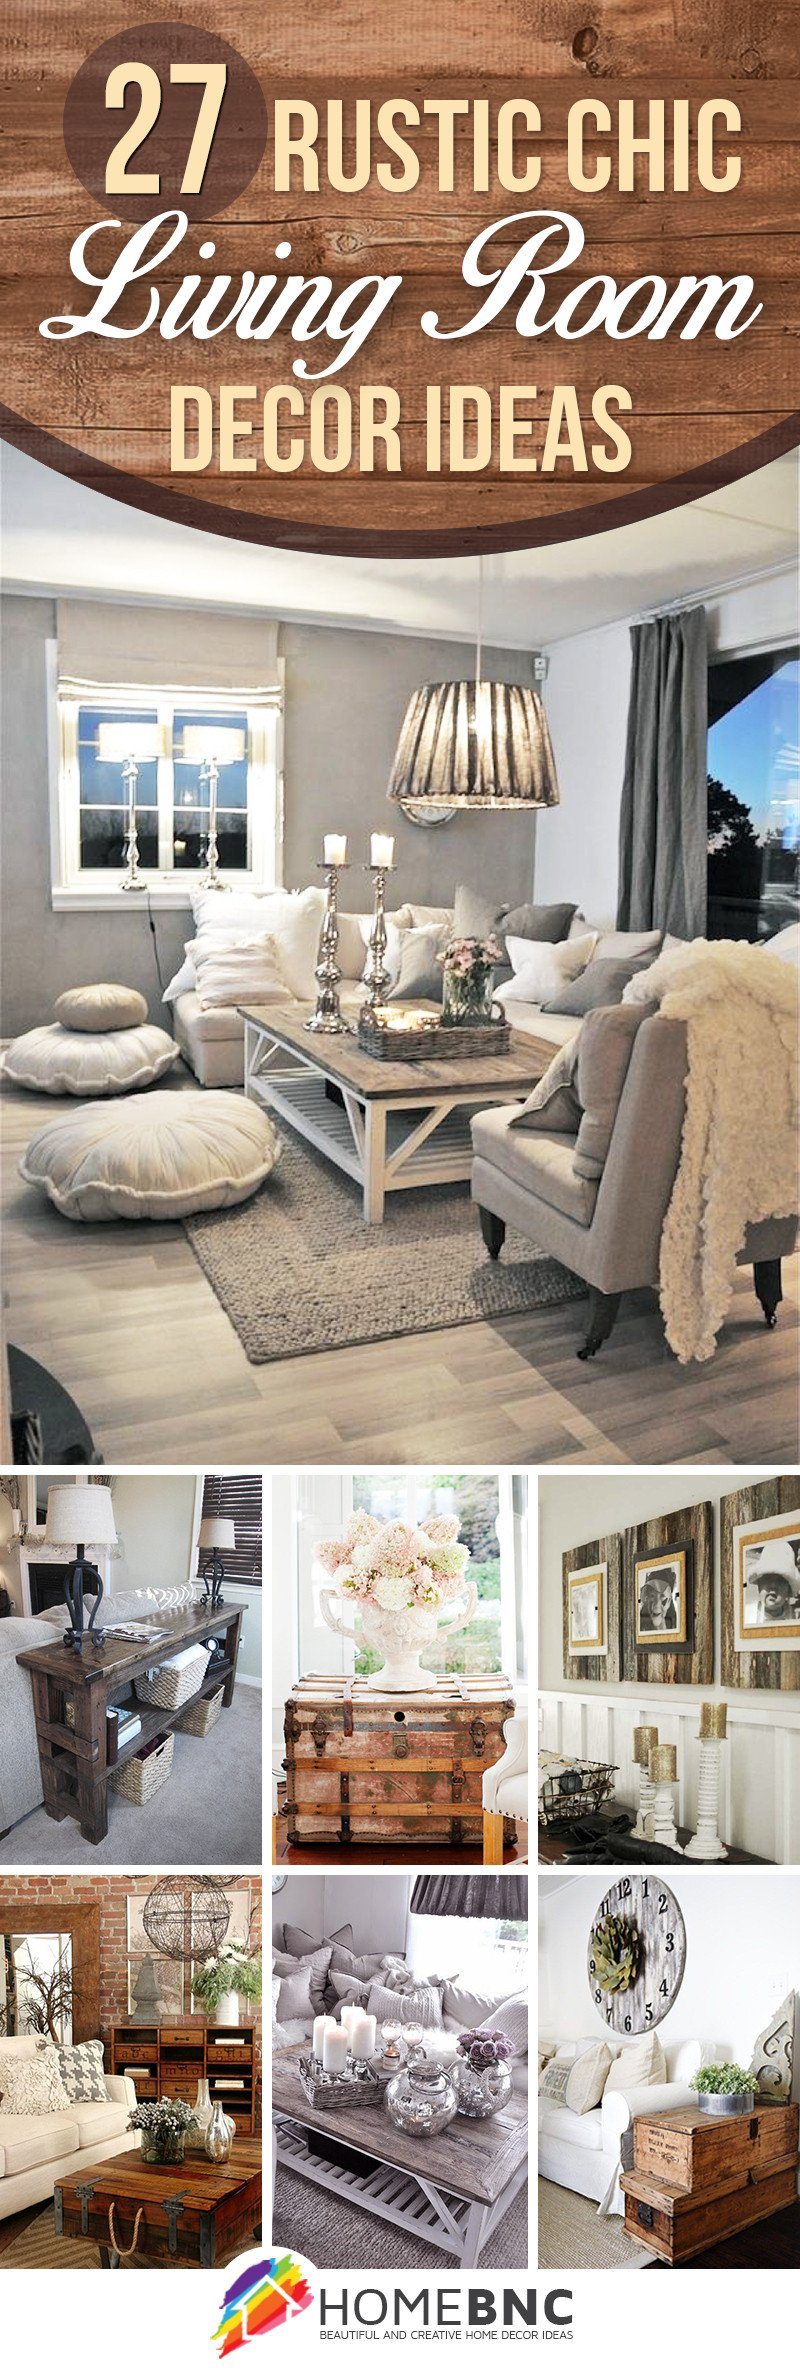 Rustic Living Room Decor Ideas New 27 Best Rustic Chic Living Room Ideas and Designs for 2019